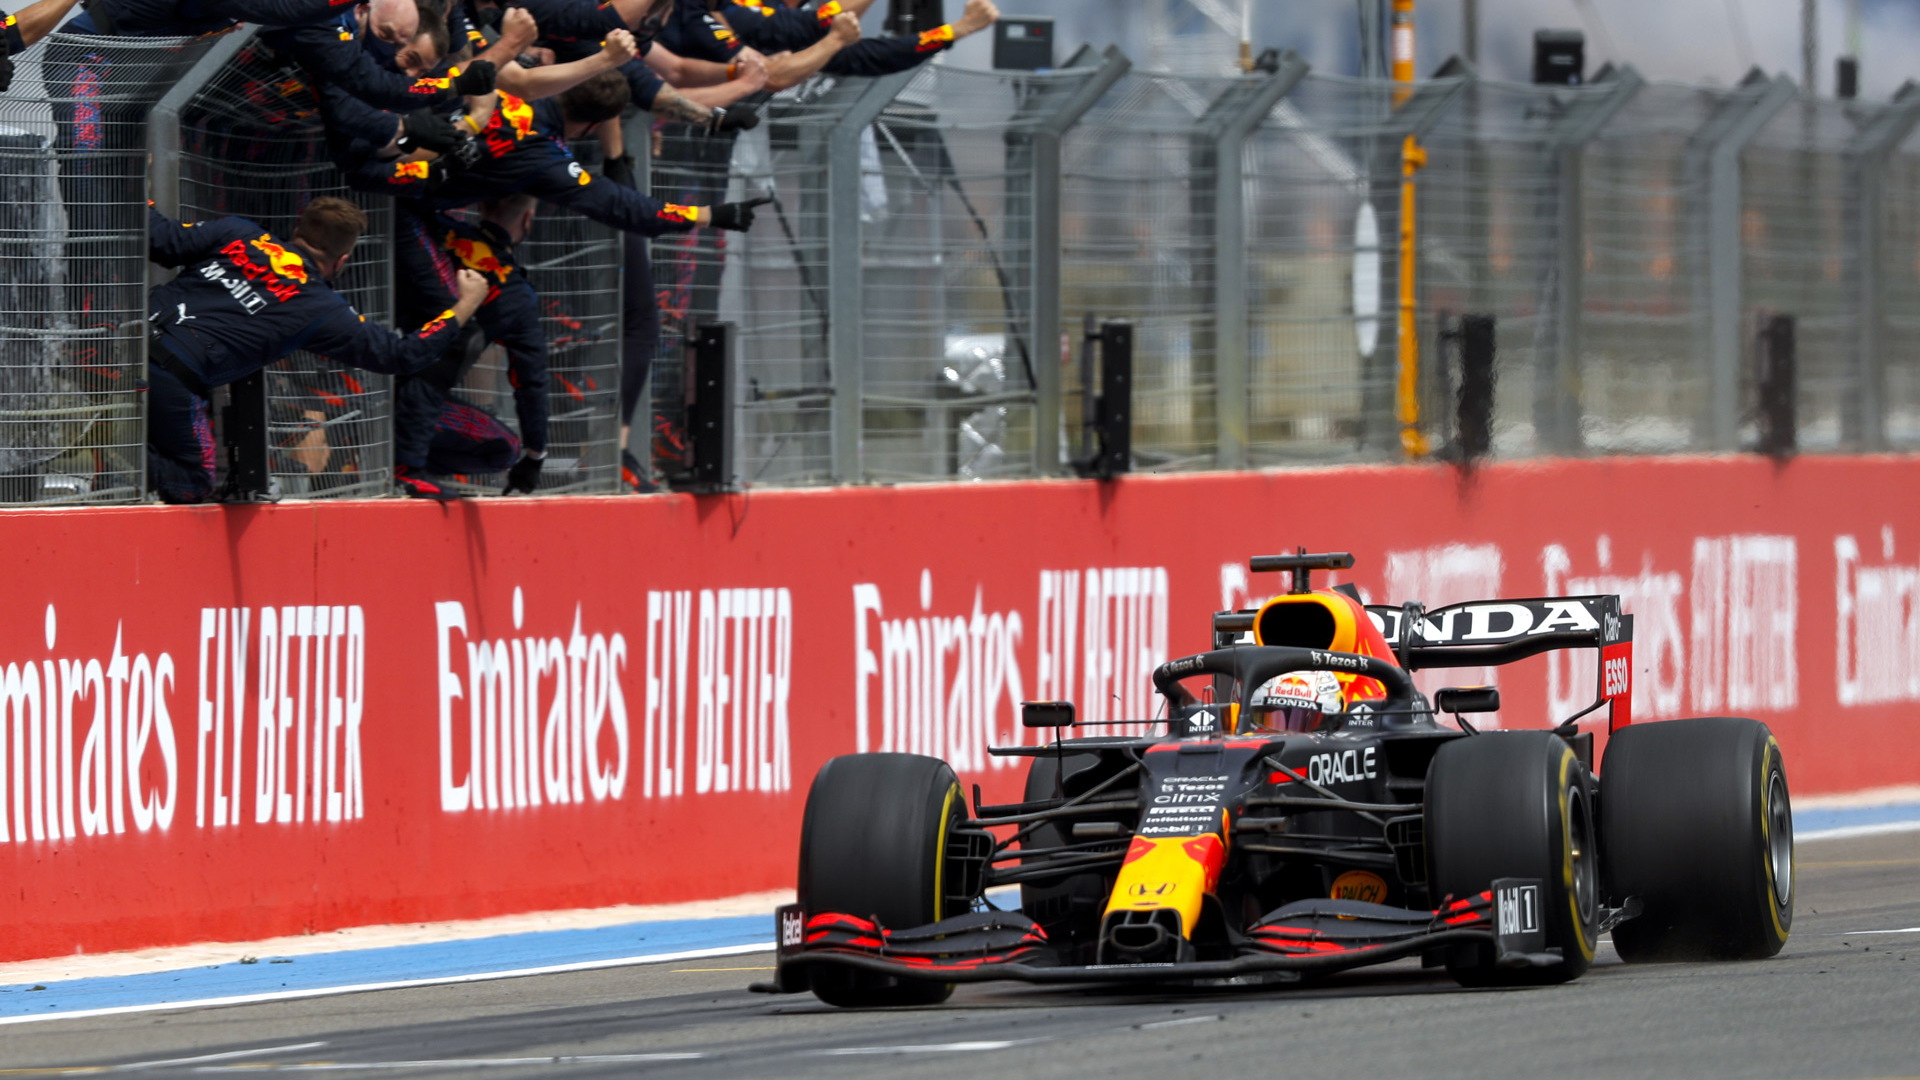 Max Verstappen at the 2021 Formula One French Grand Prix